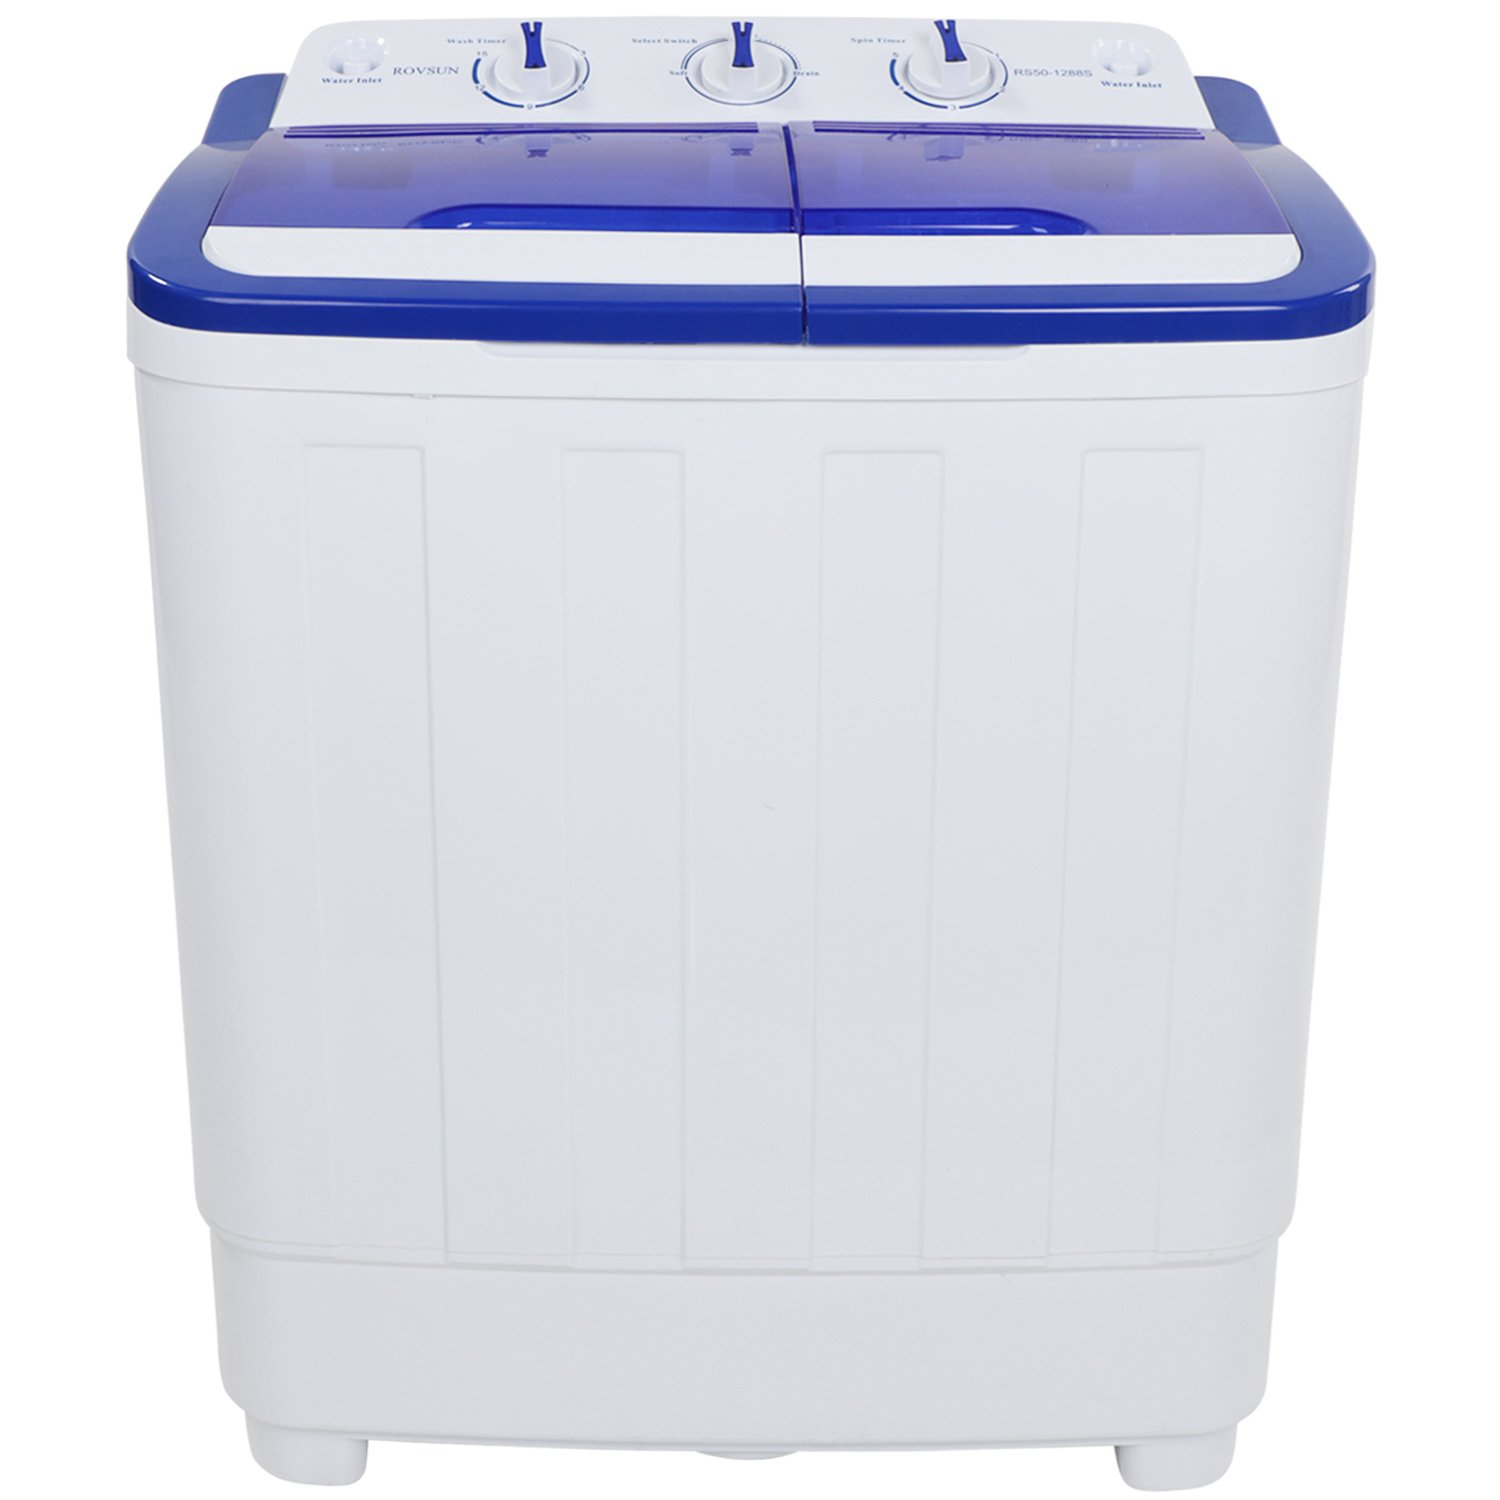 ROVSUN Portable Washing Machine with Twin Tub Electric Compact Mini Washer, 16.6LBS Capacity Energy/Space Saving, Laundry Spin Cycle w/ Hose, Perfect for Home RV Camping Dorms College